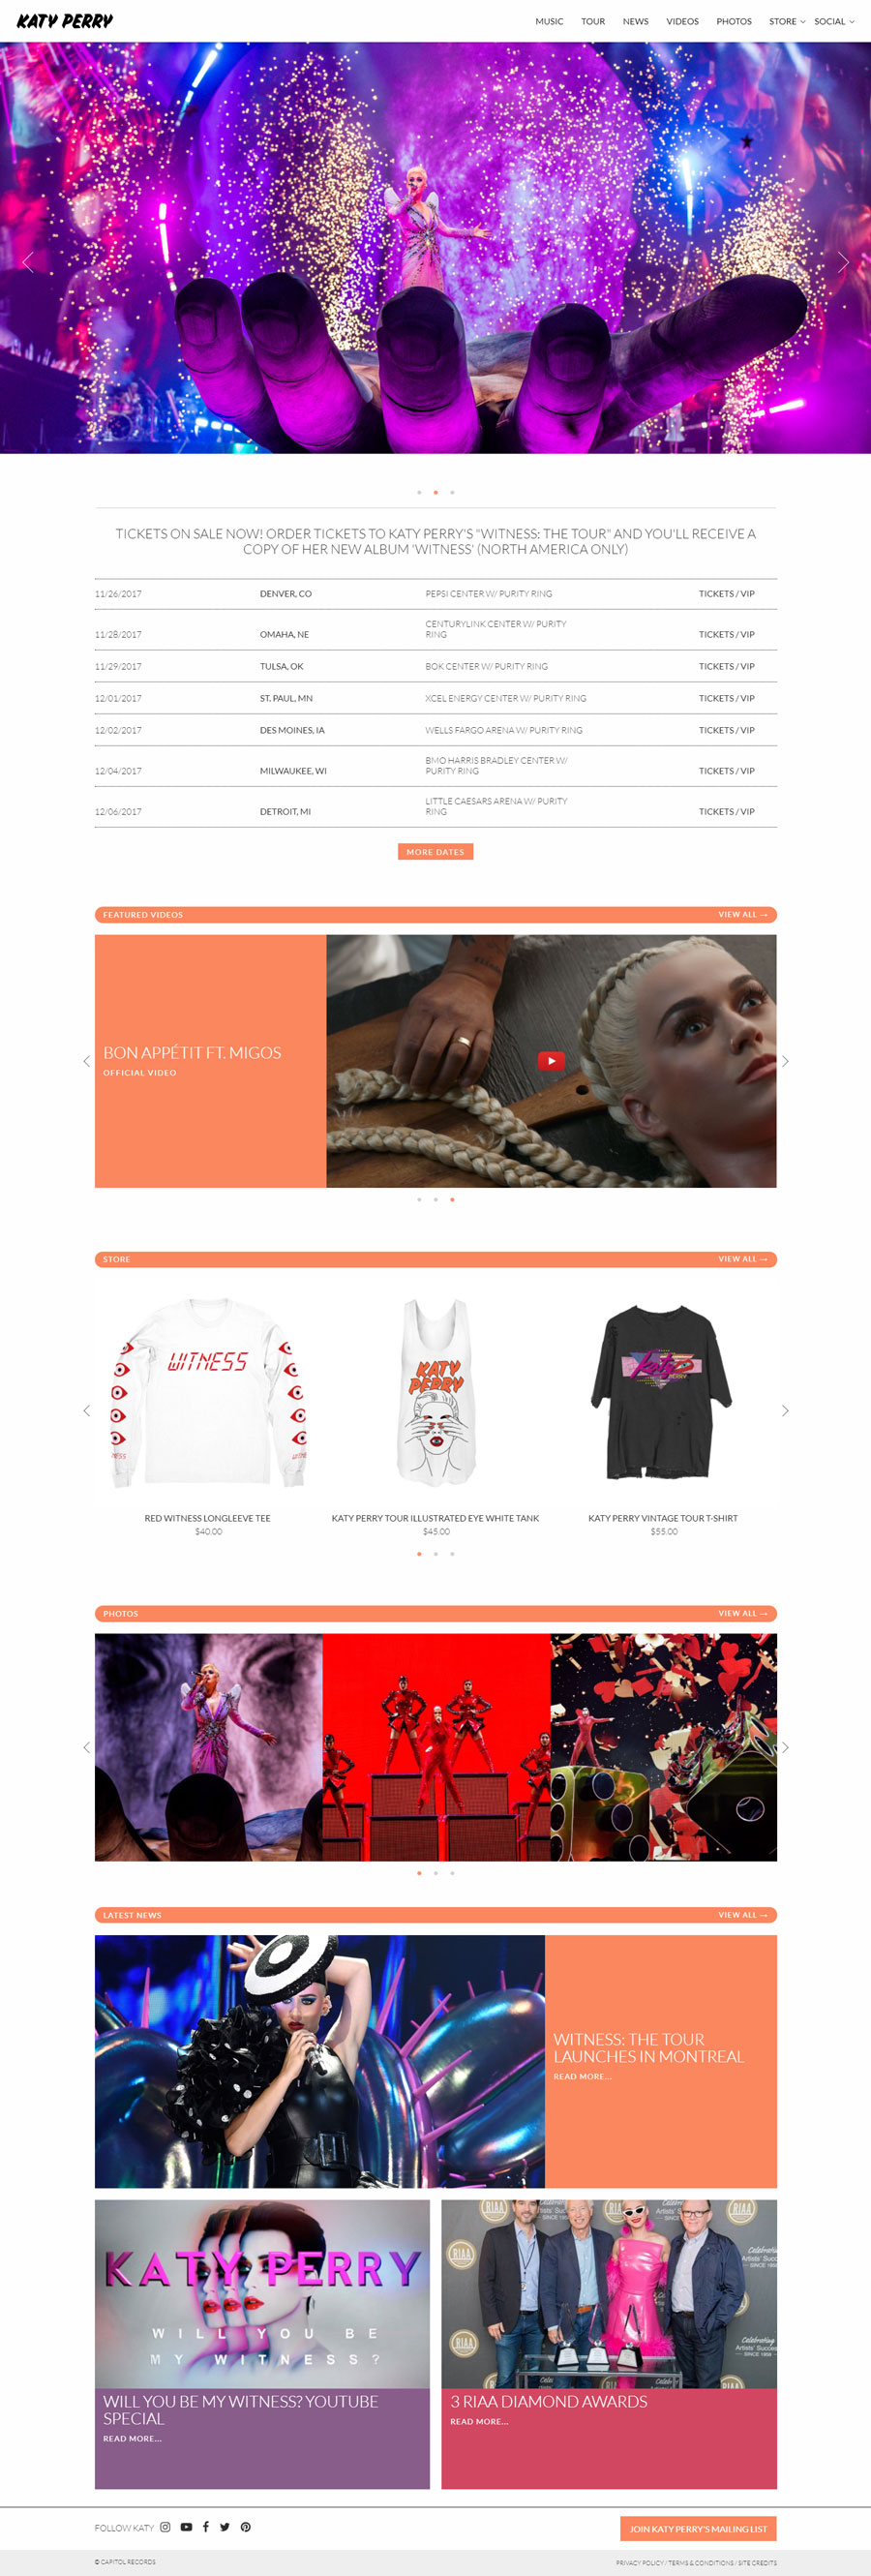 Katy Perry American Singer Website Design